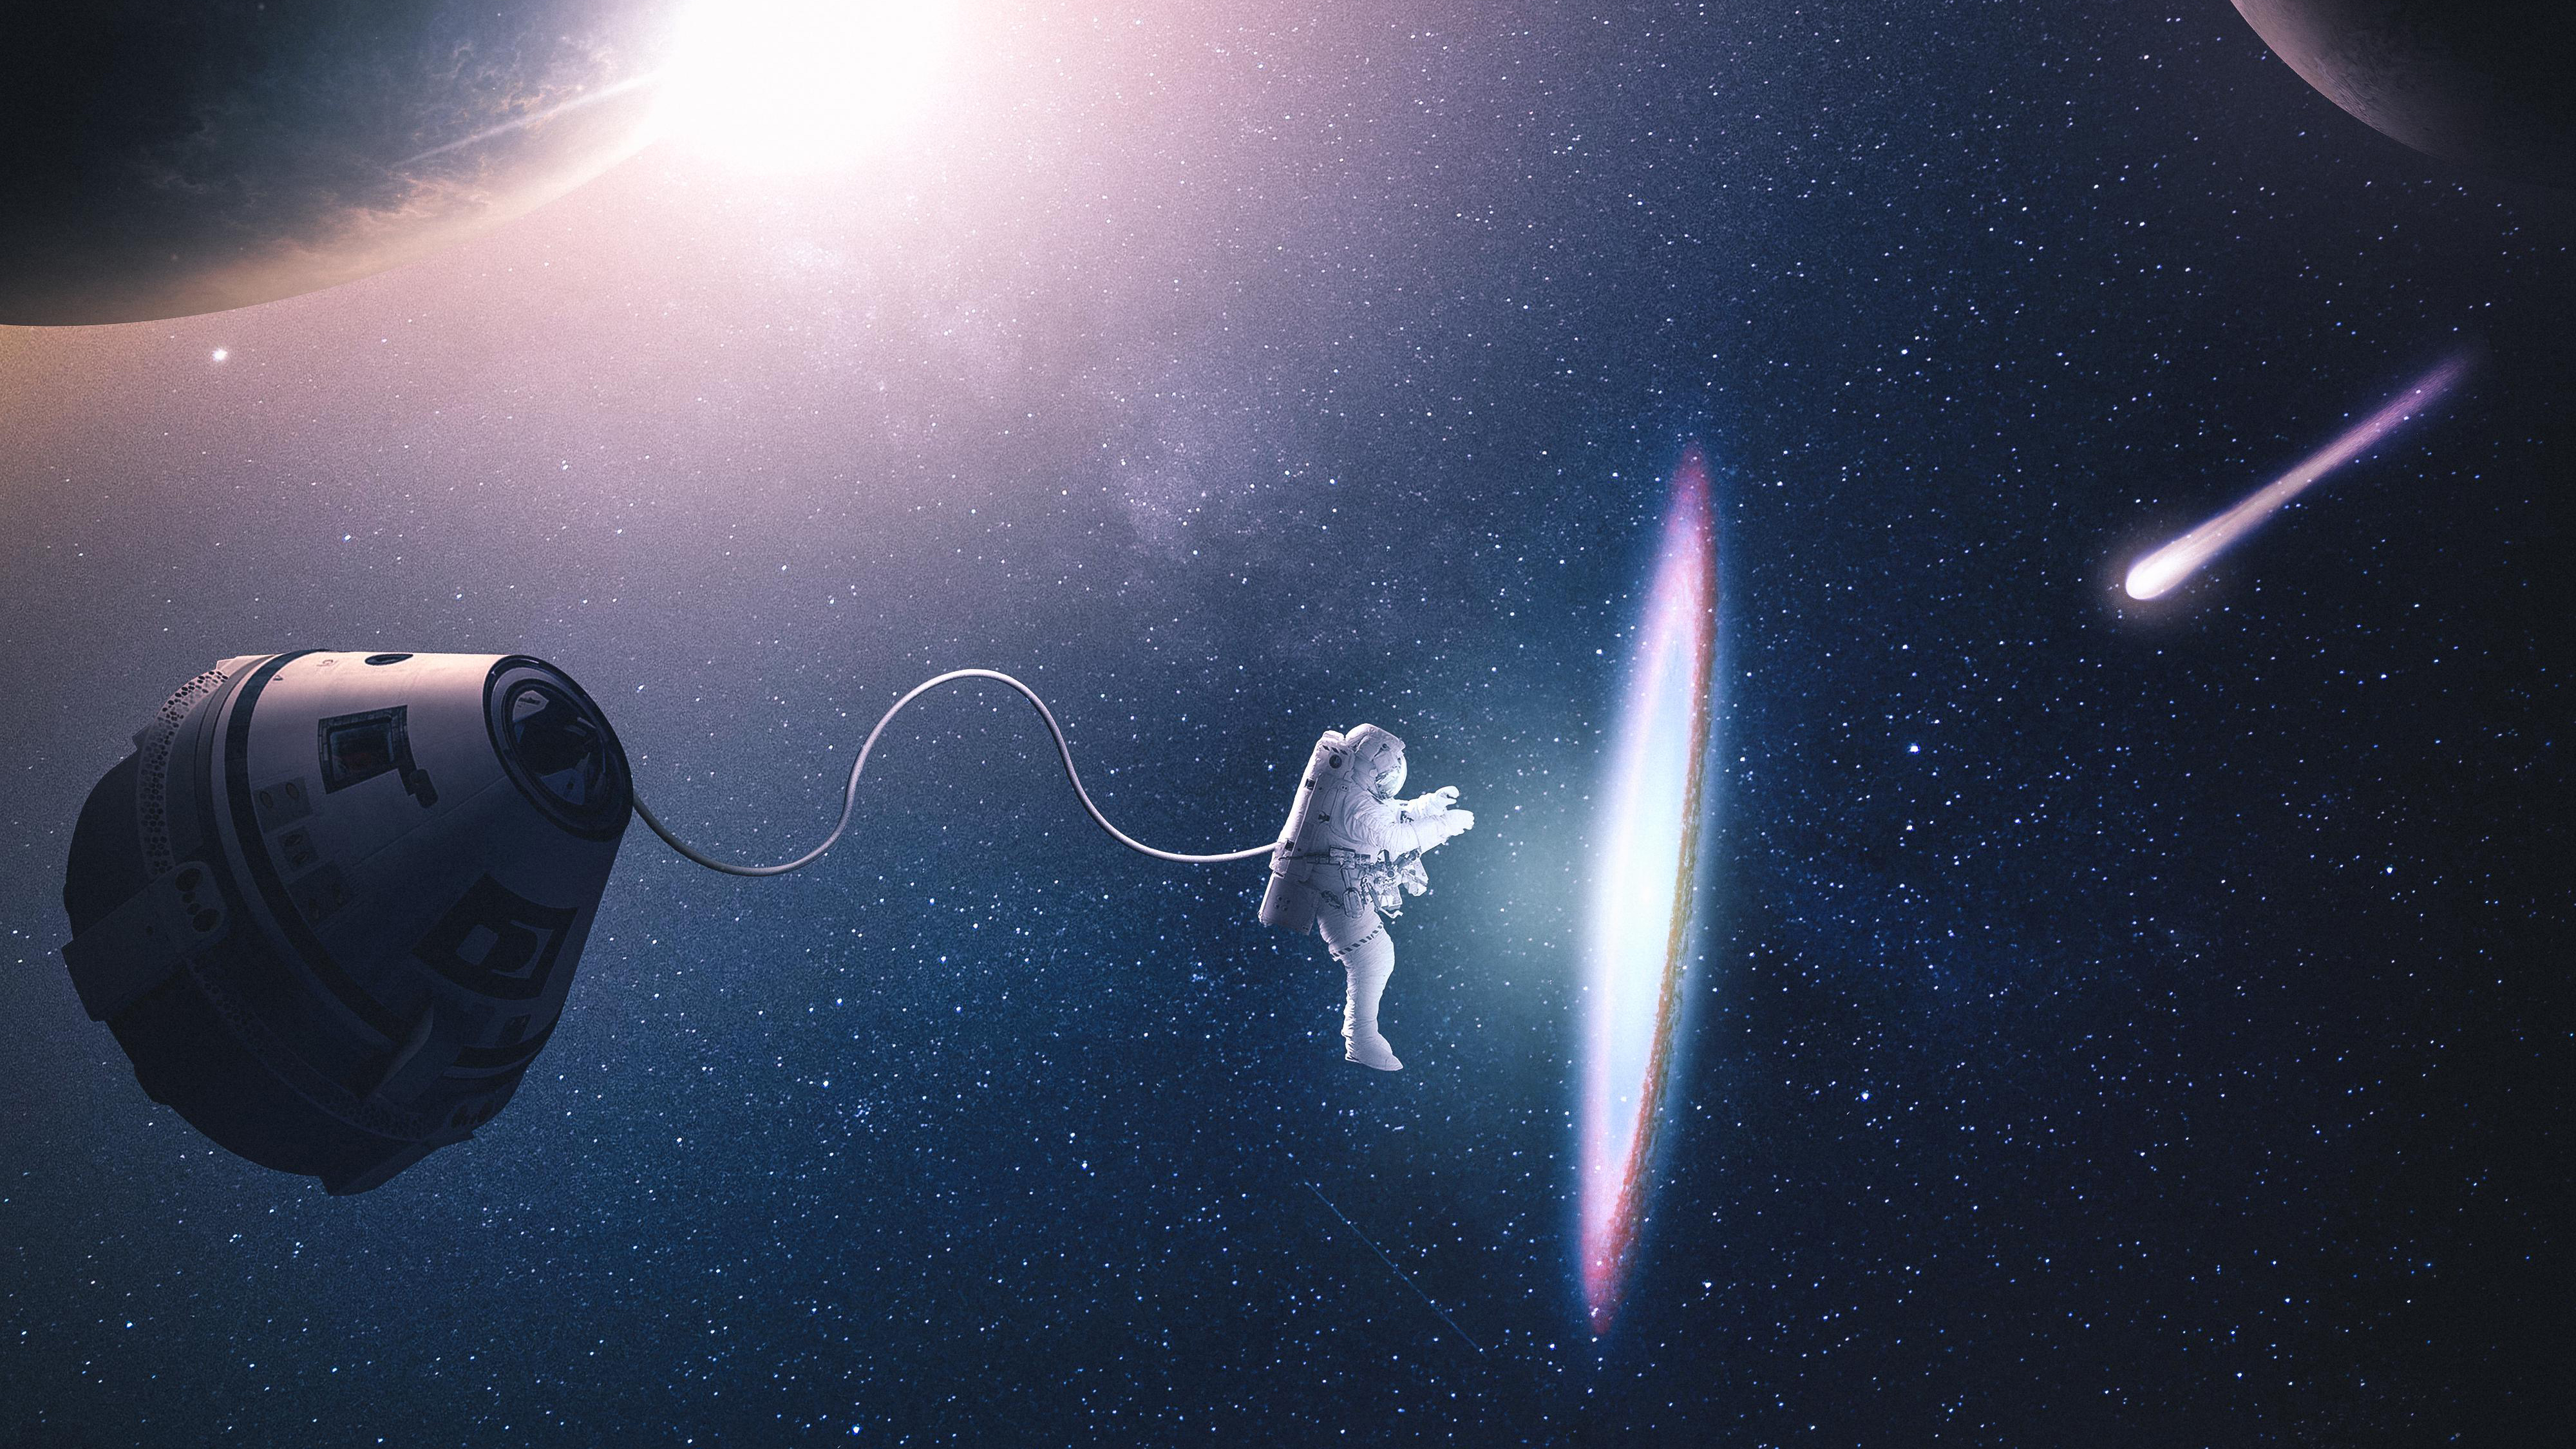 Astronaut Creating Parralel Space 4k Hd Artist 4k Wallpapers Images Backgrounds Photos And Pictures